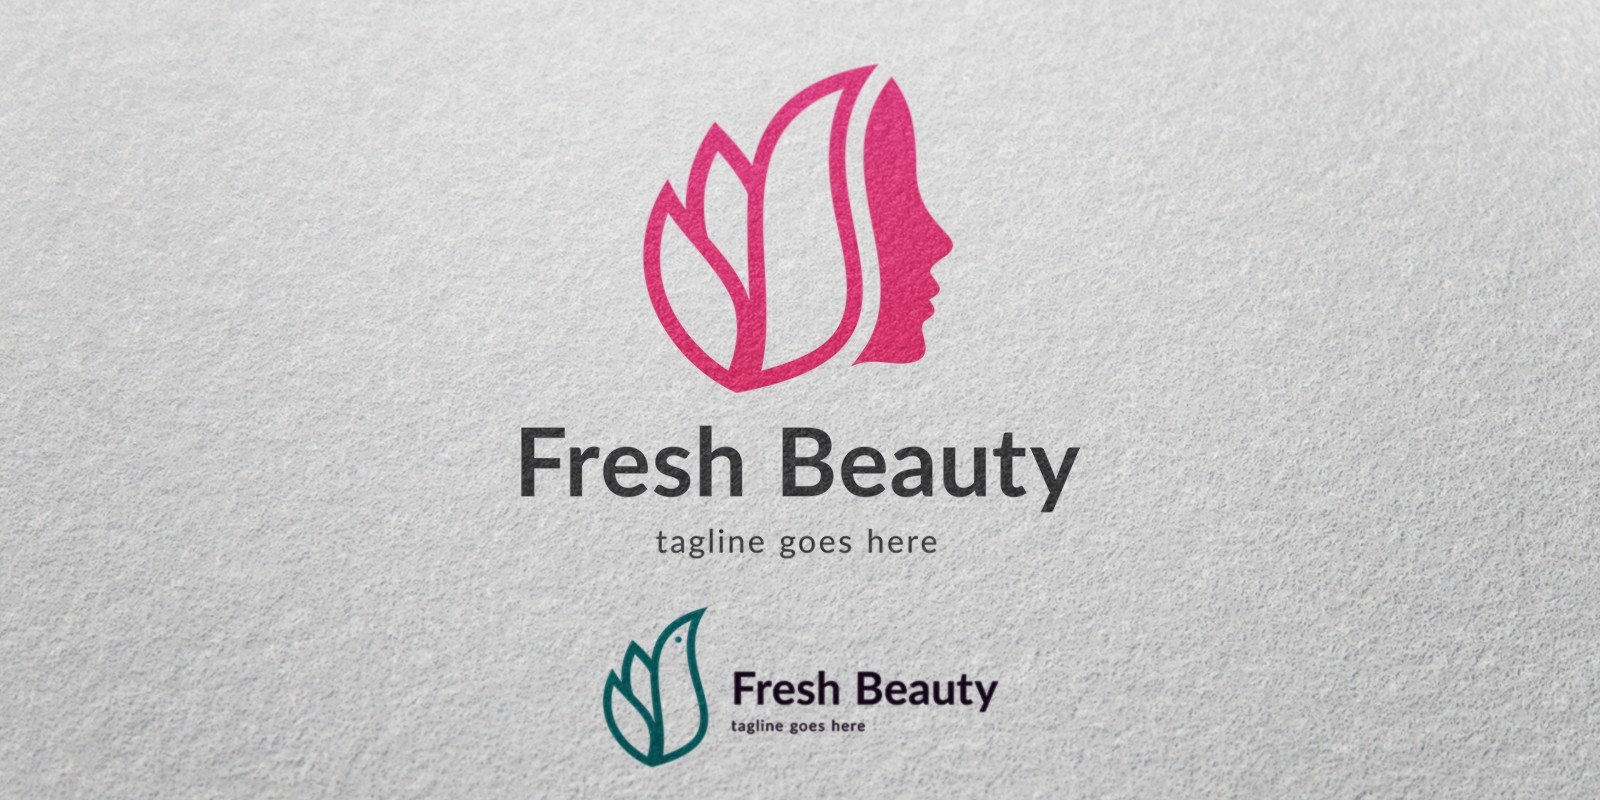 Fresh Beauty - Logo Template - Fashion Logo Templates | Codester